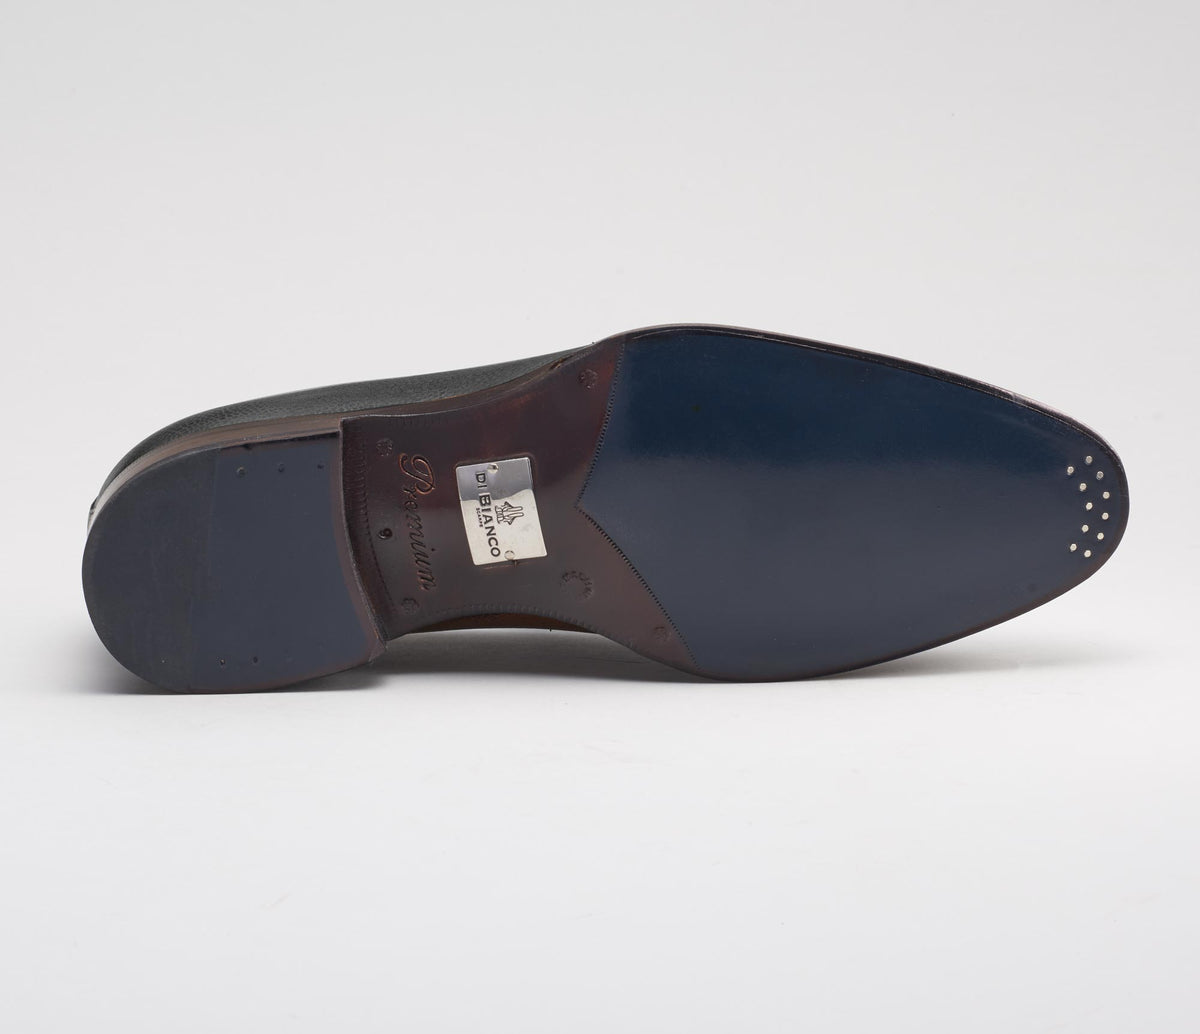 Livorno Leather Pecari Loafer in Nero